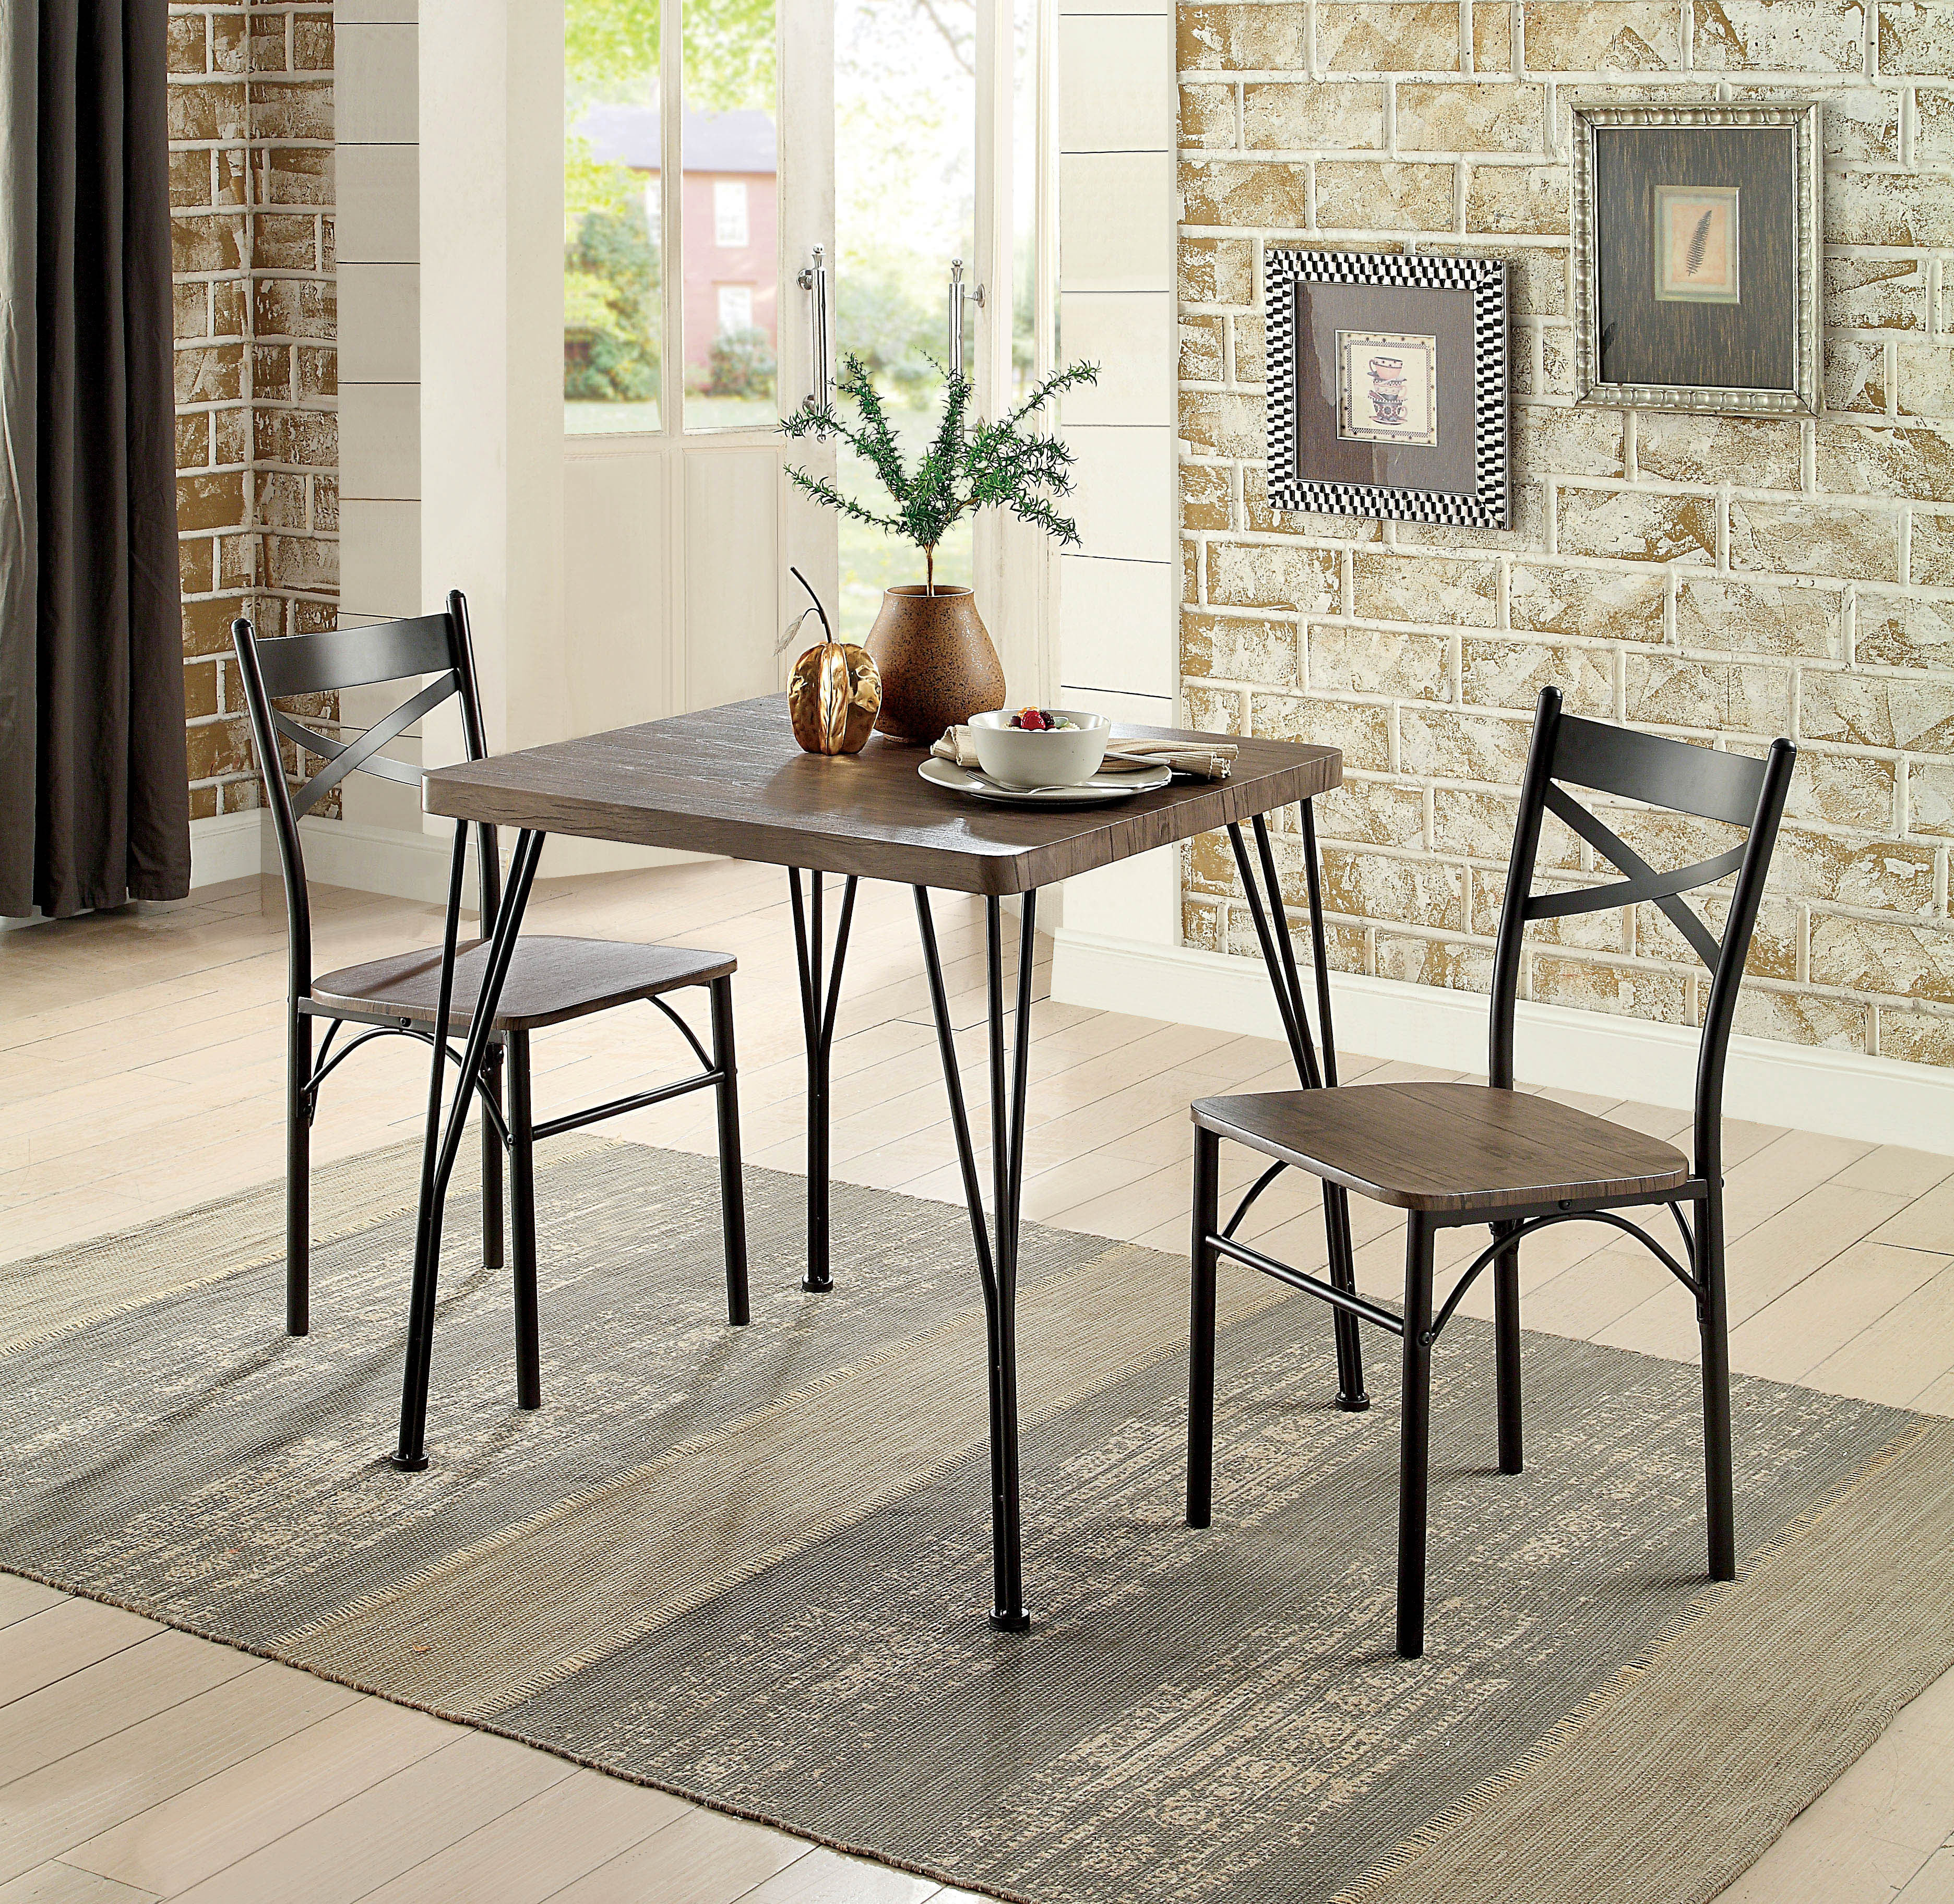 Laurel Foundry Modern Farmhouse Guertin 3 Piece Dining Set & Reviews With Most Up To Date Mulvey 5 Piece Dining Sets (Image 12 of 20)